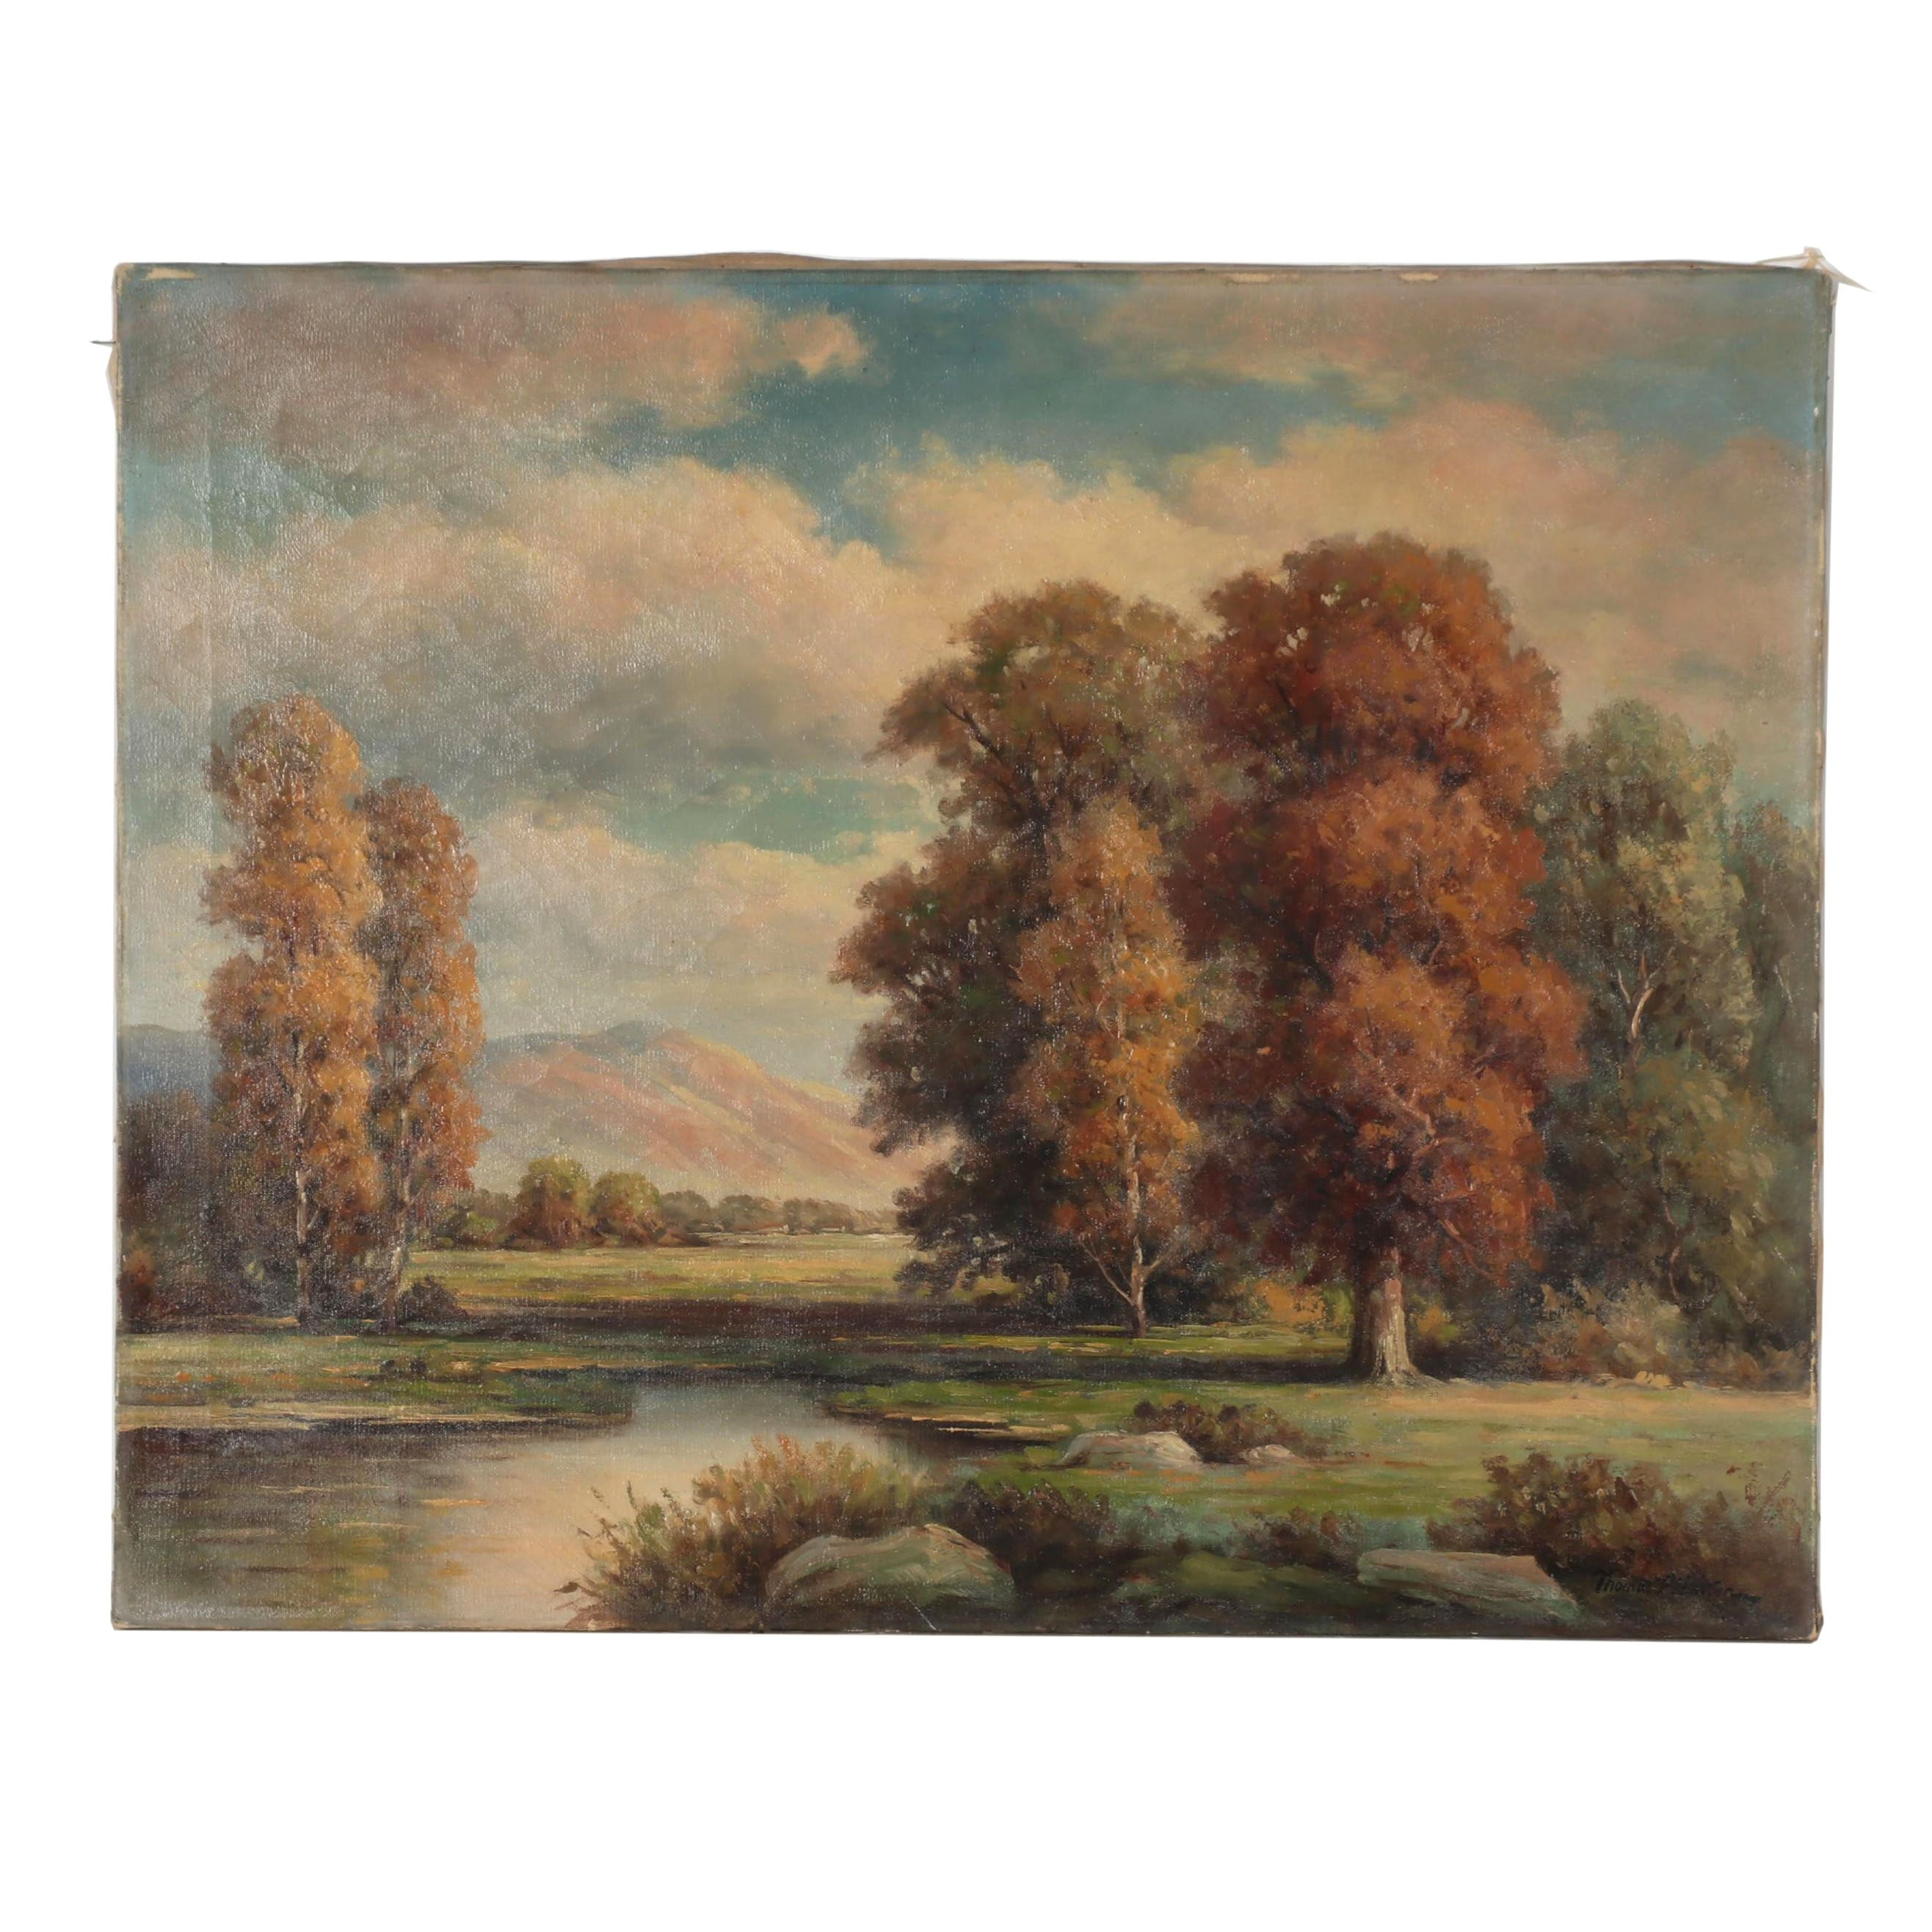 Thomas P. Patten Landscape Oil Painting